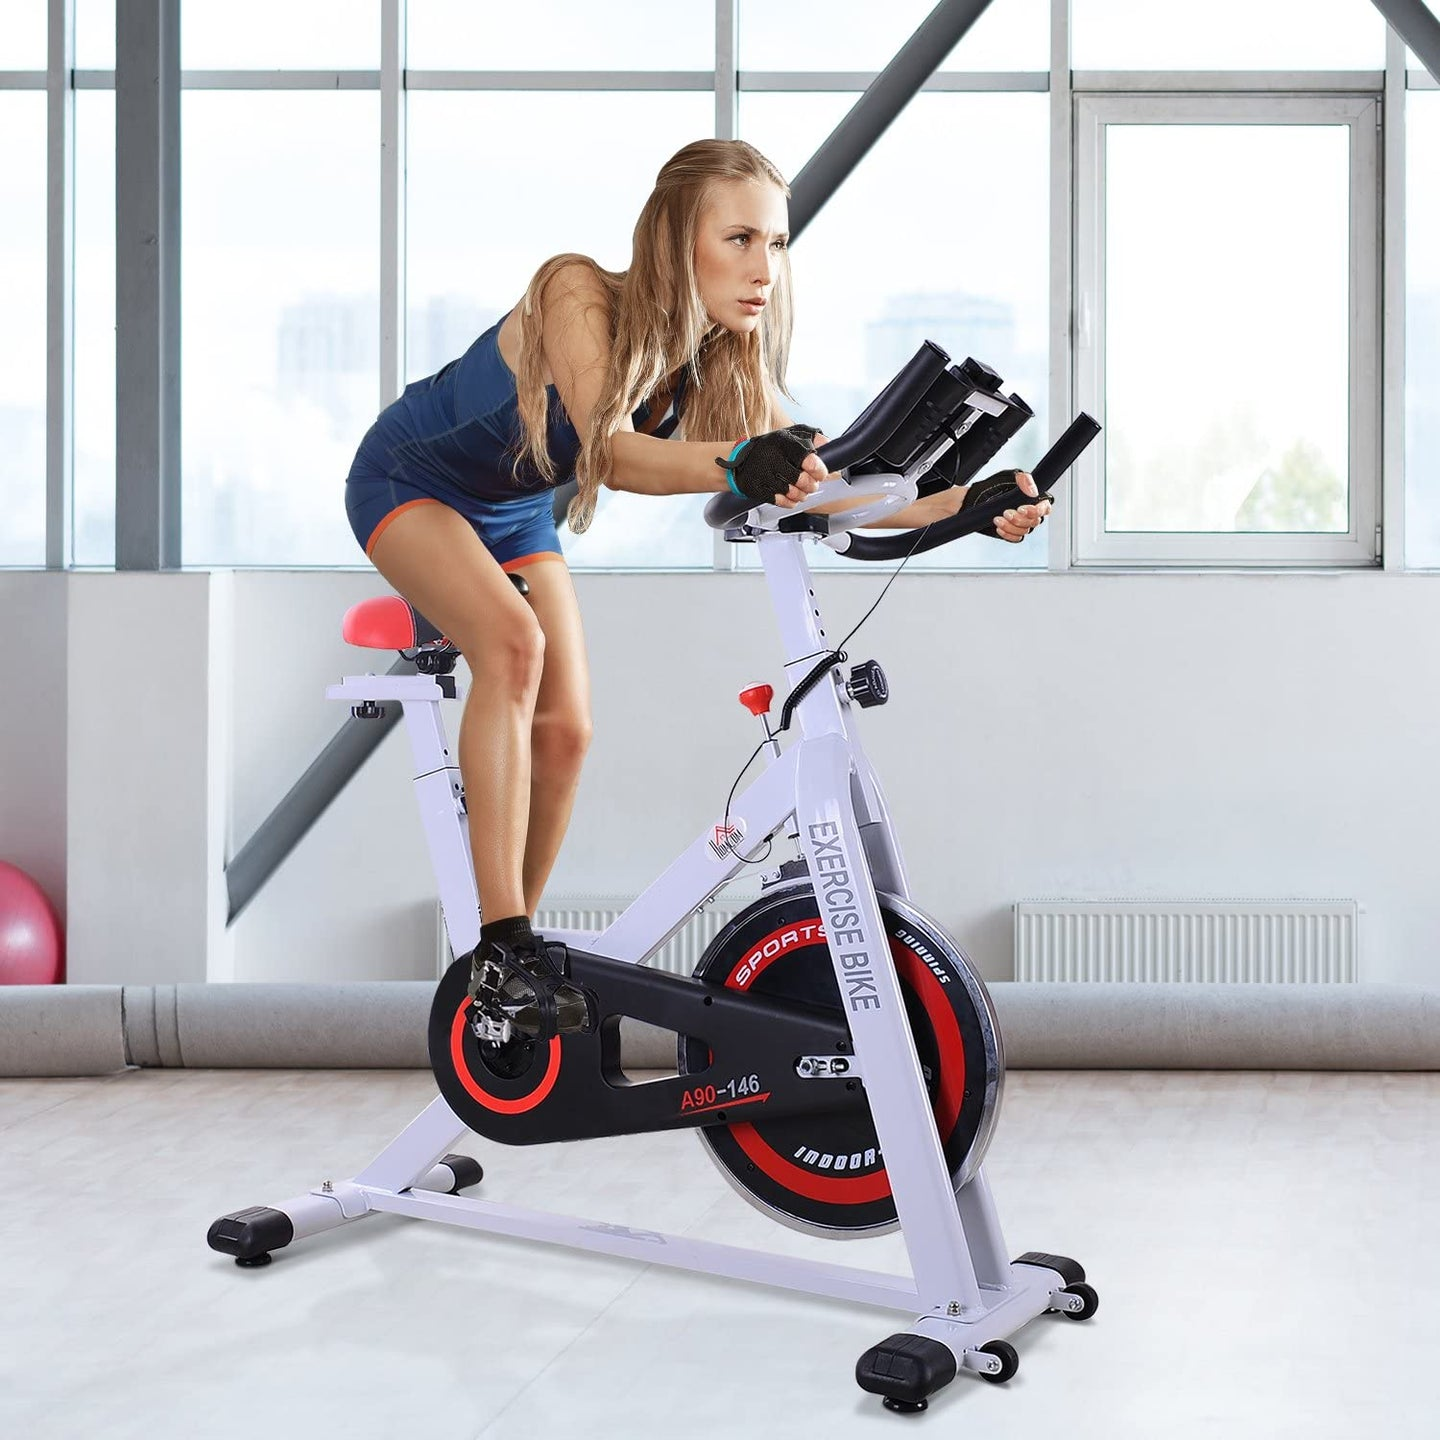 HOMCOM 8kg Spinning Flywheel Exercise Bike